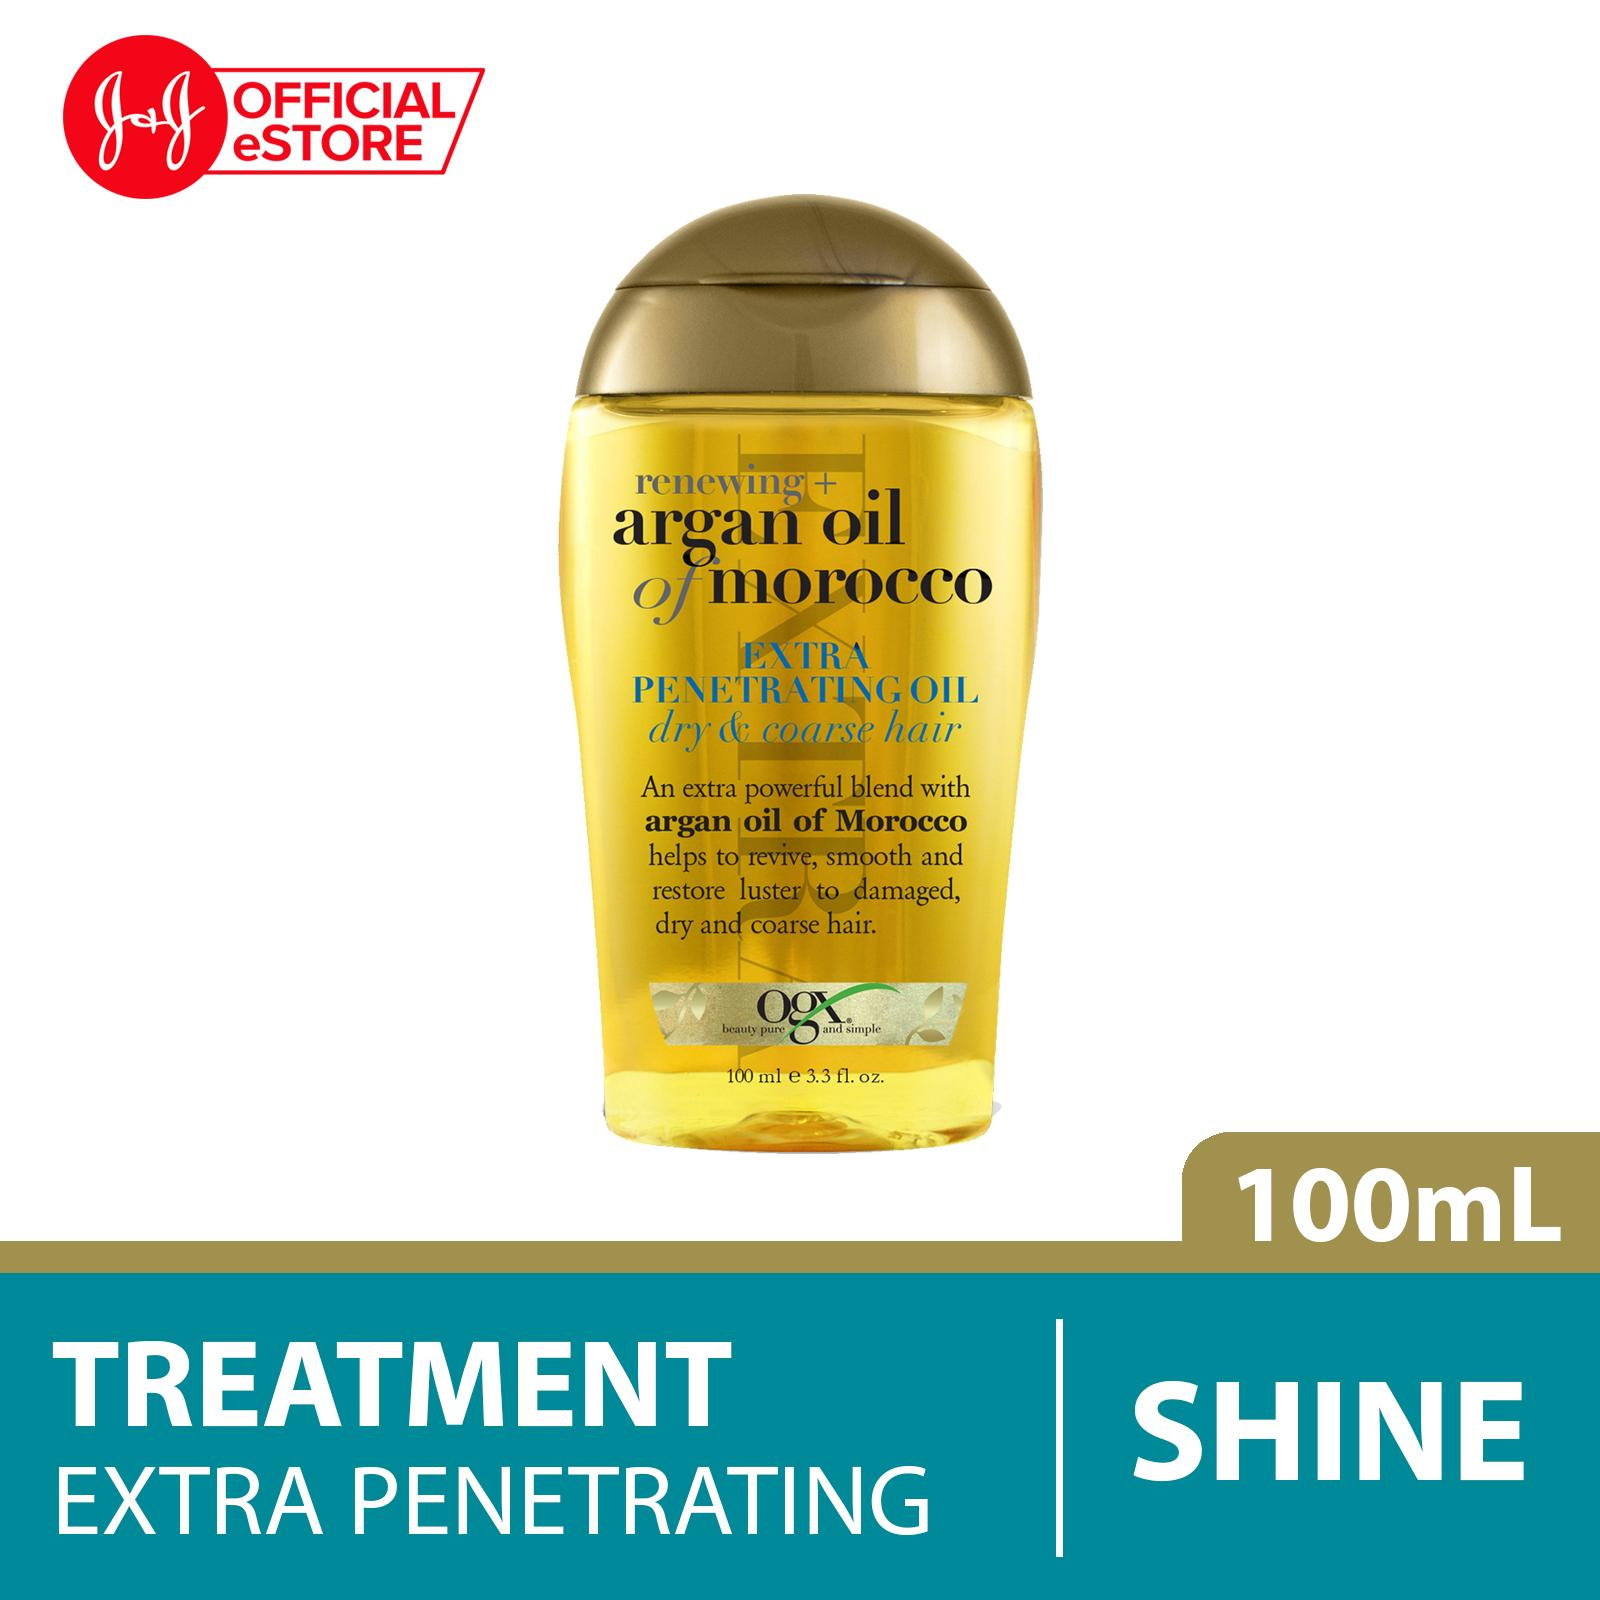 Ogx Renewing Argan Oil Morocco Extra Penetrating Oil 100ml By Johnson & Johnson Official Store